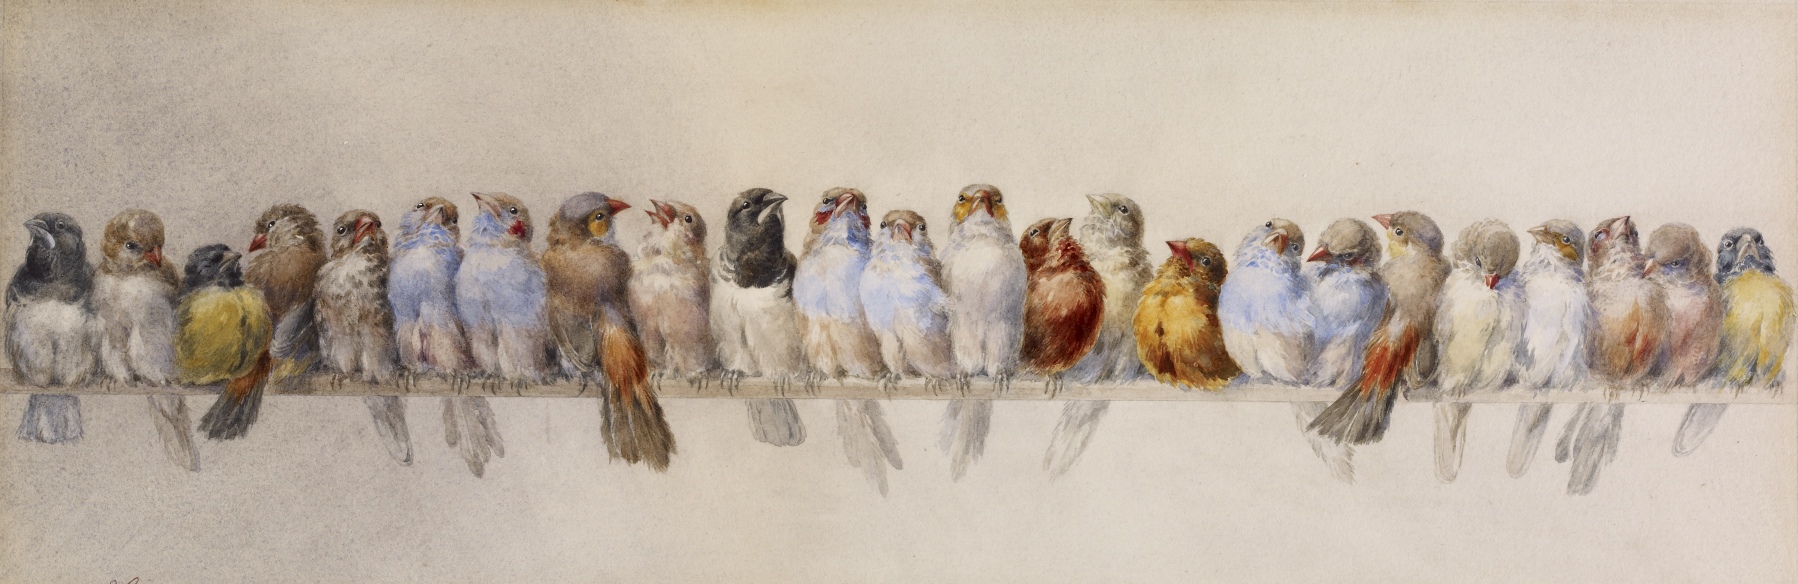 File:Hector Giacomelli - A Perch of Birds - Walters 37963.jpg ...